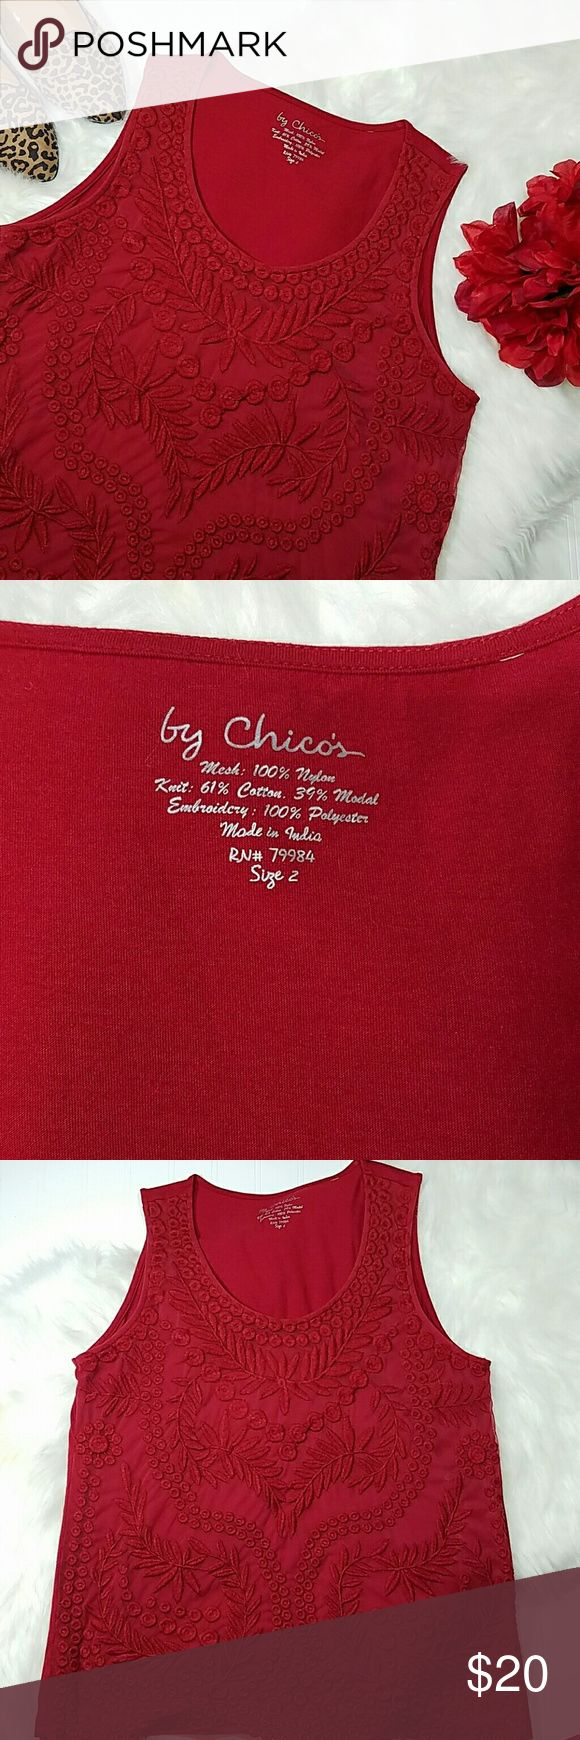 Chicos red lace tank top Red tank top with lace embroidery, front is lined.  Nylon/cotton/modal. Excellent condition.  Sz 2 Chico's Tops Tank Tops